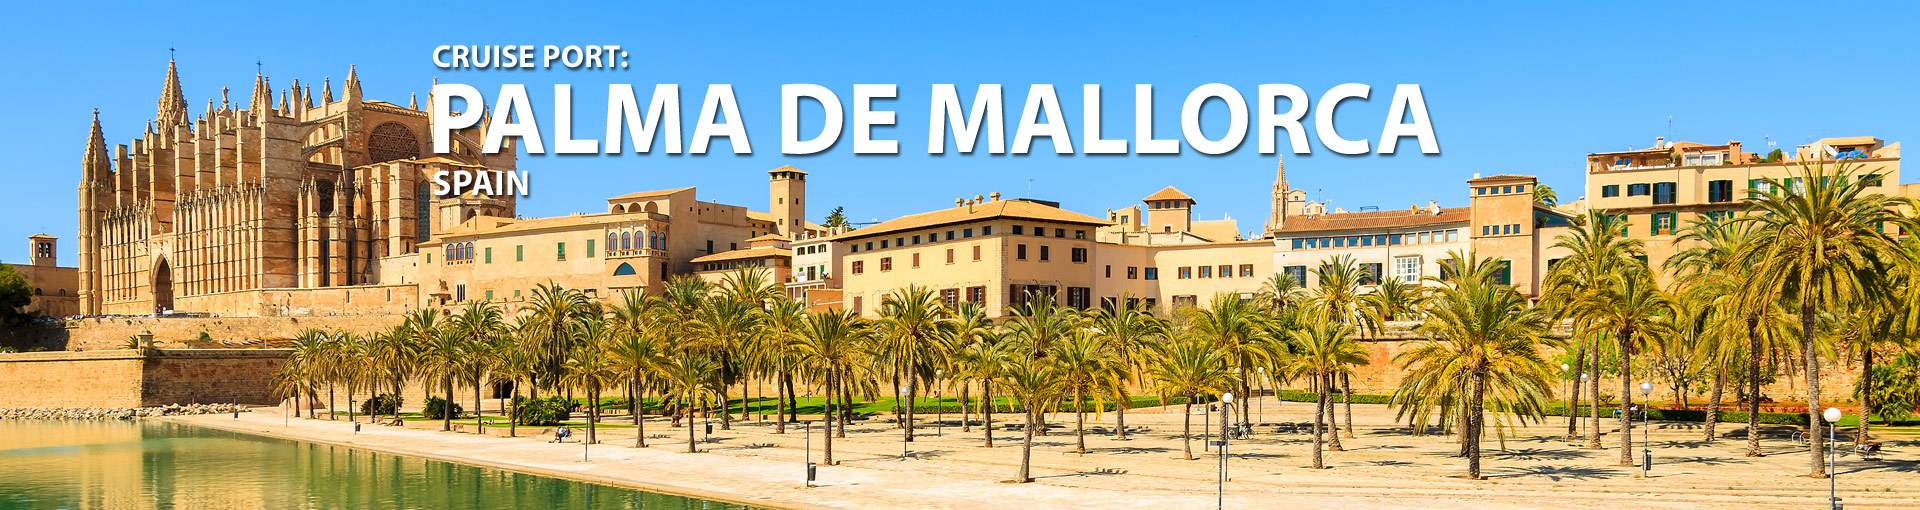 Cruises from Palma de Mallorca, Spain